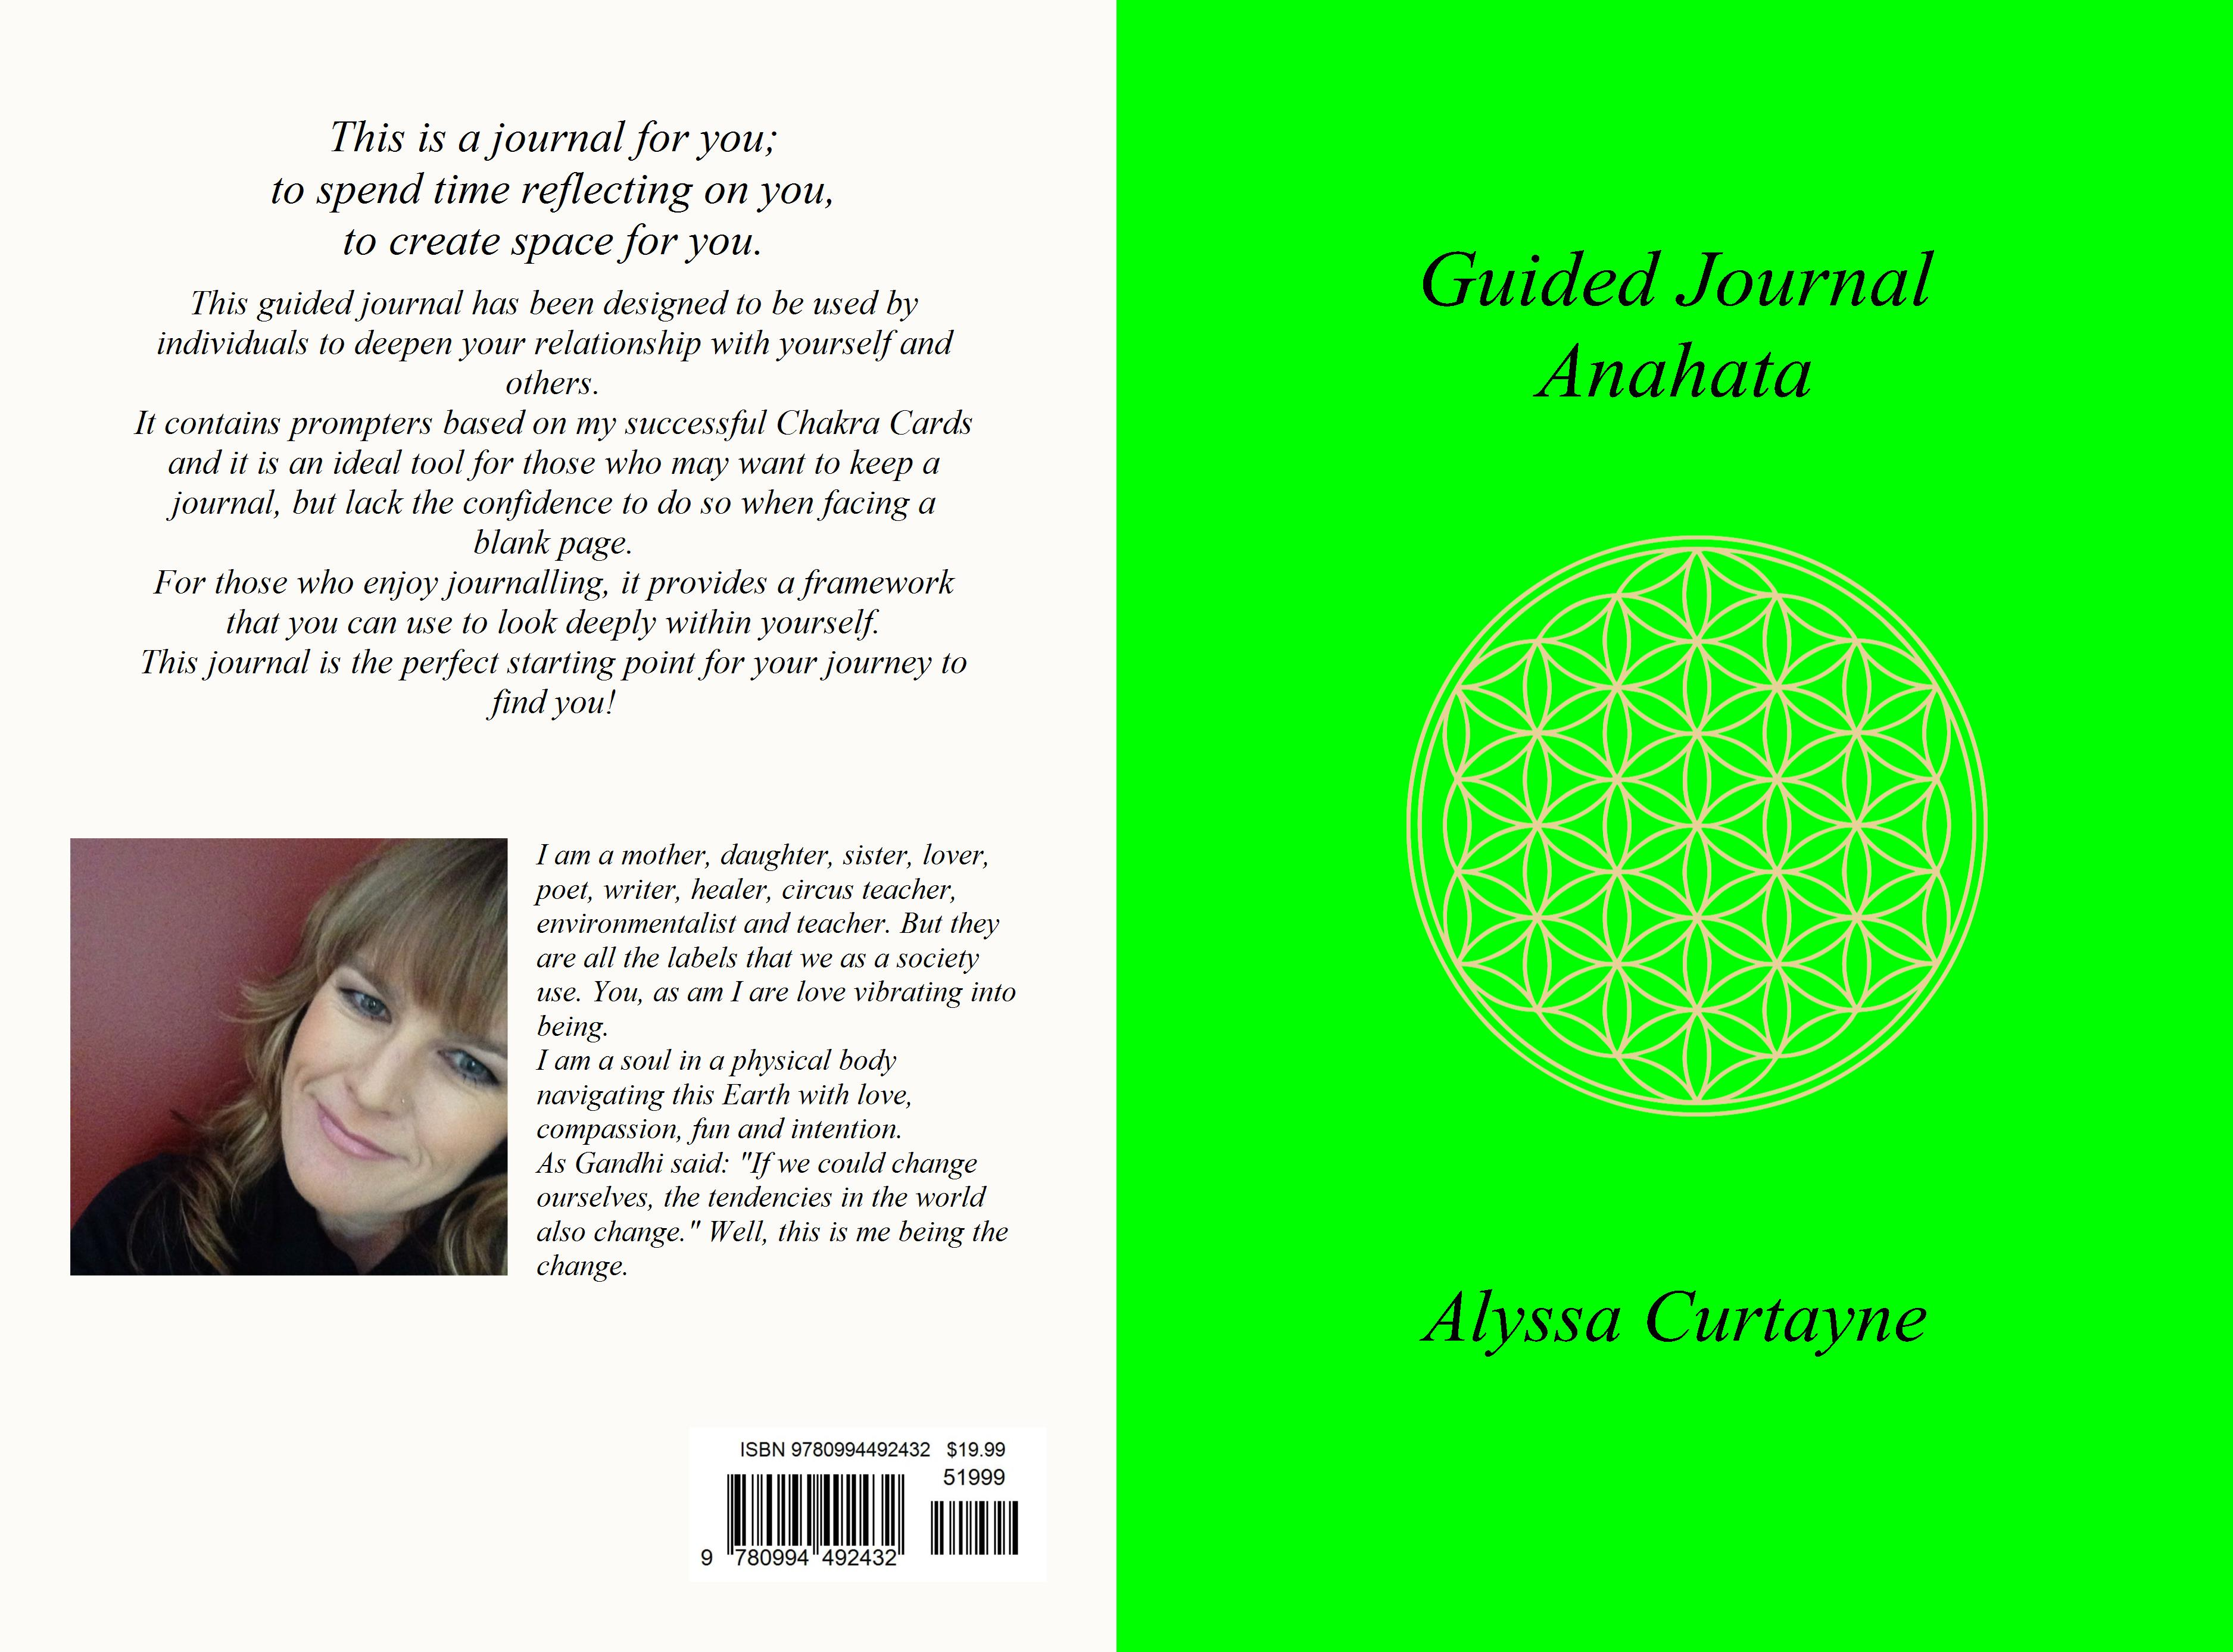 Guided Journal Anahata cover image